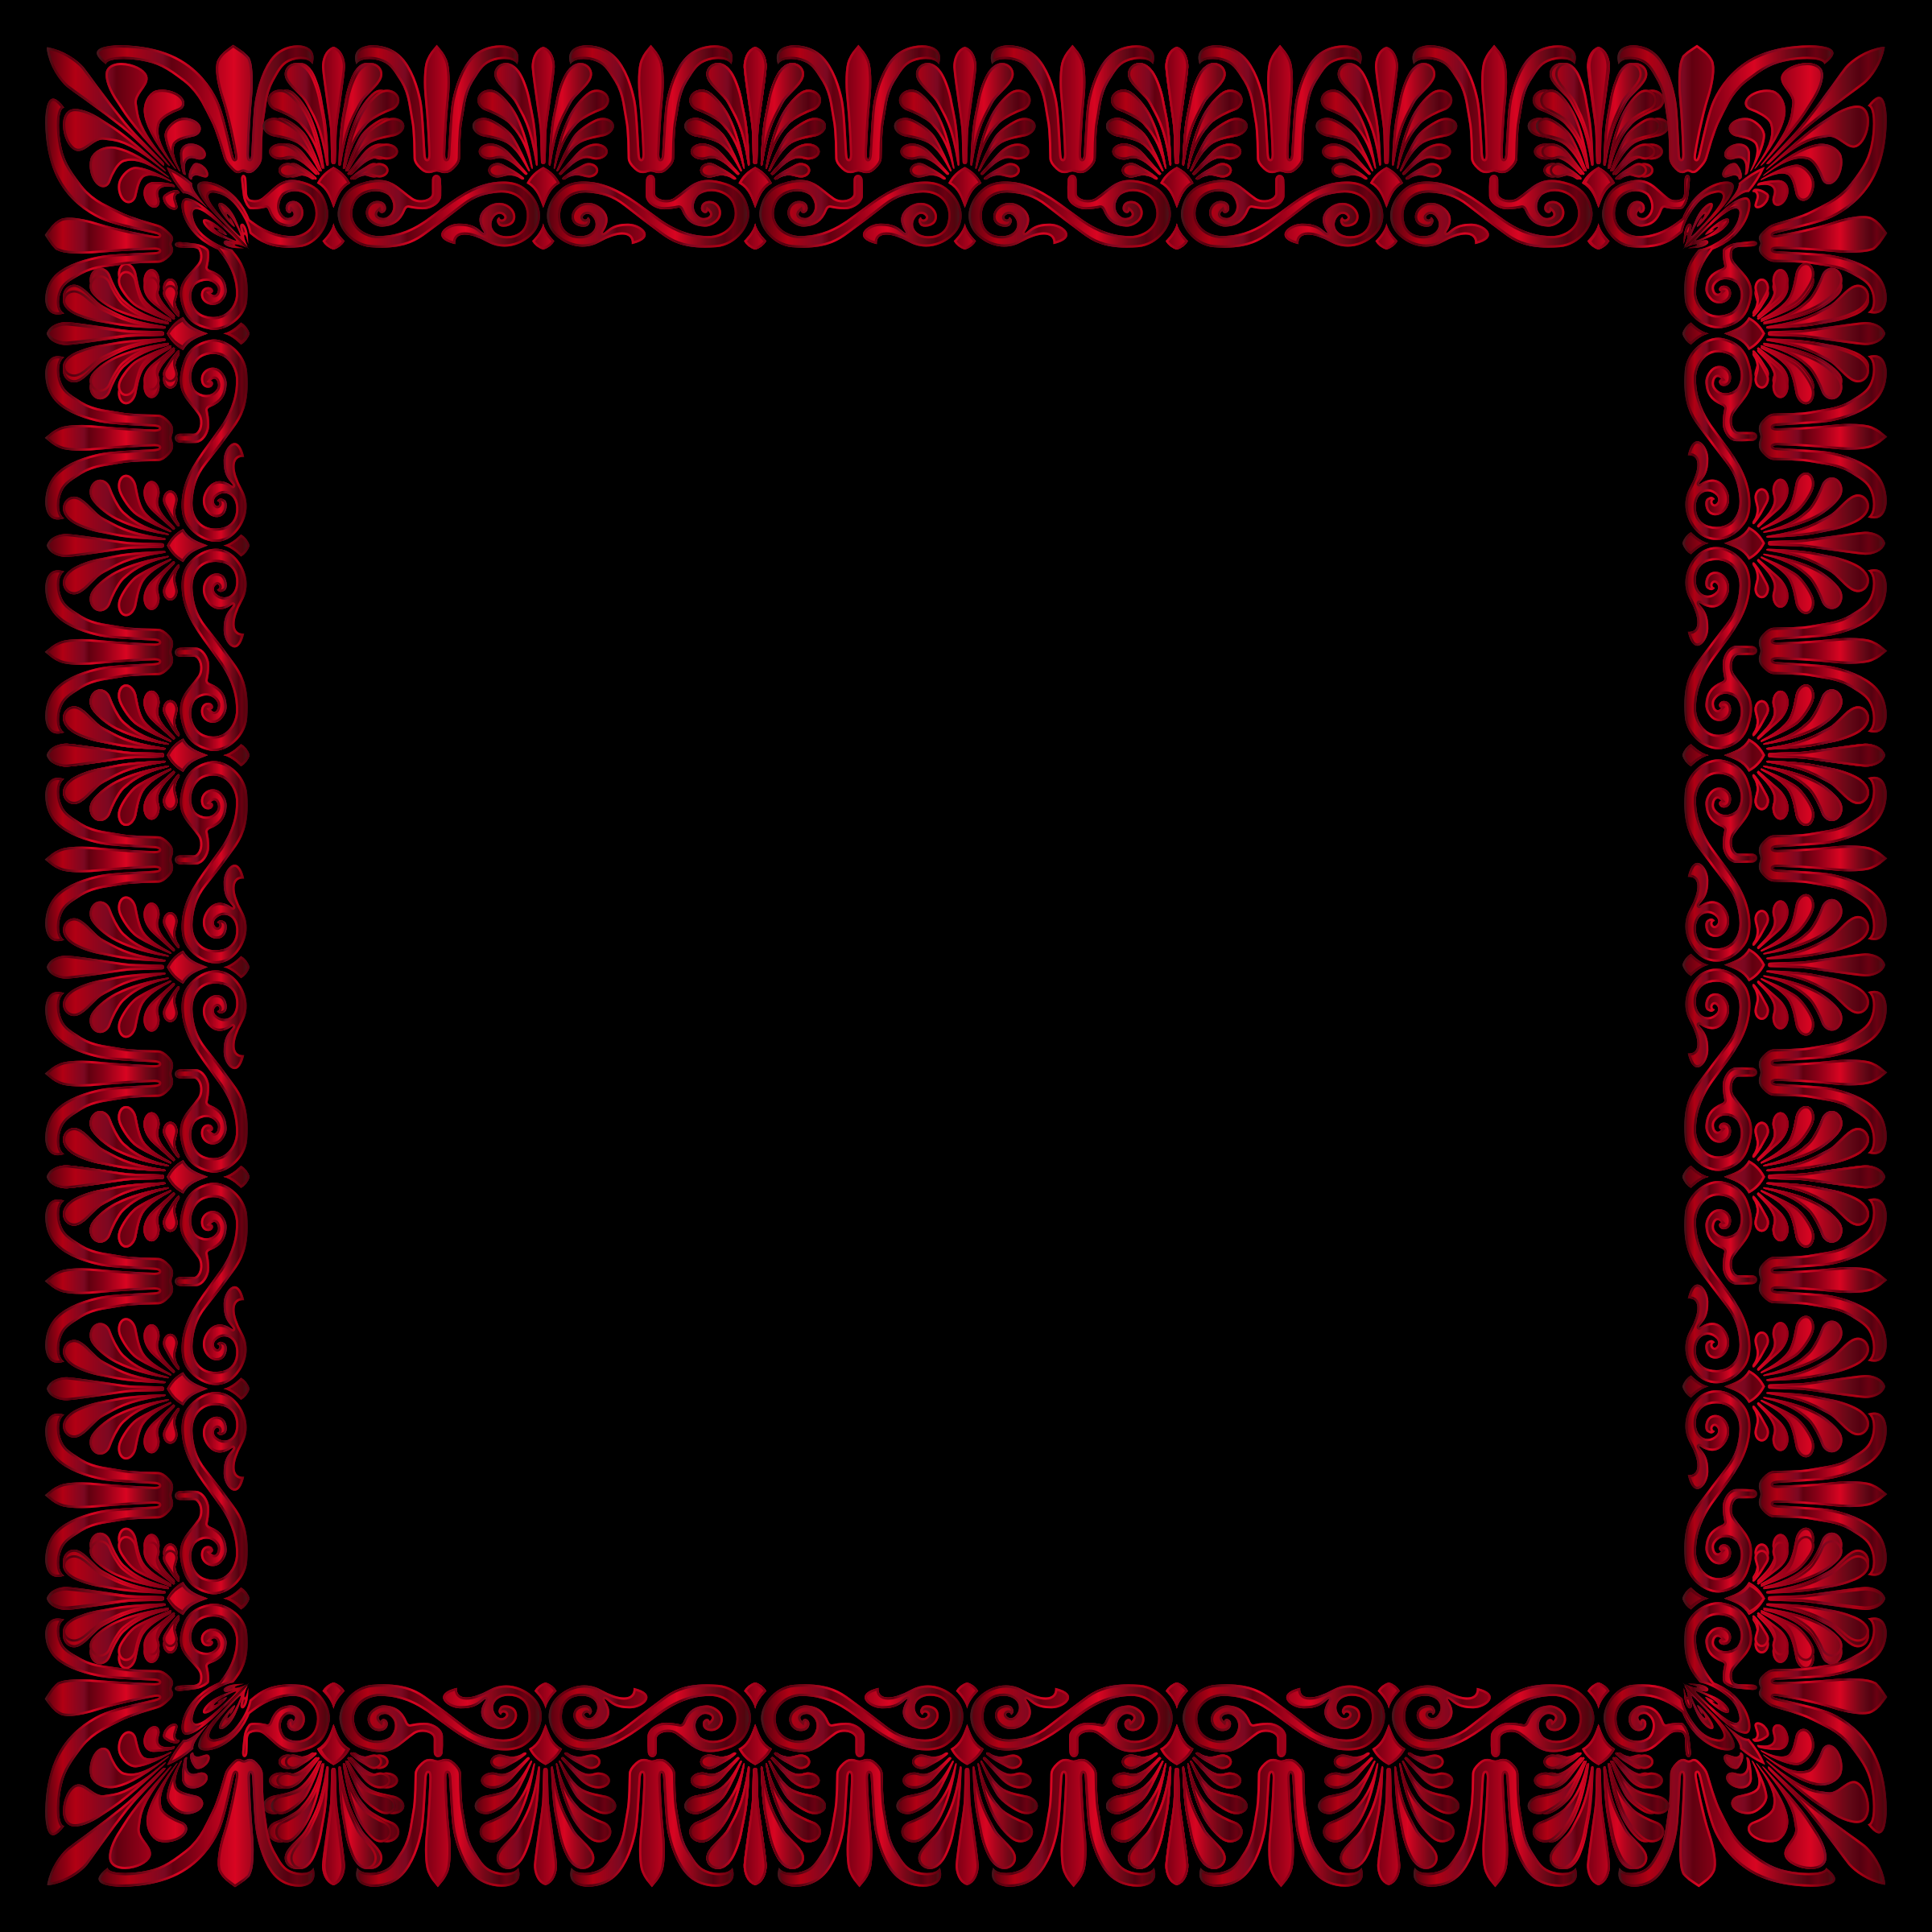 Crimson Victorian Ornament Expanded 2 by GDJ